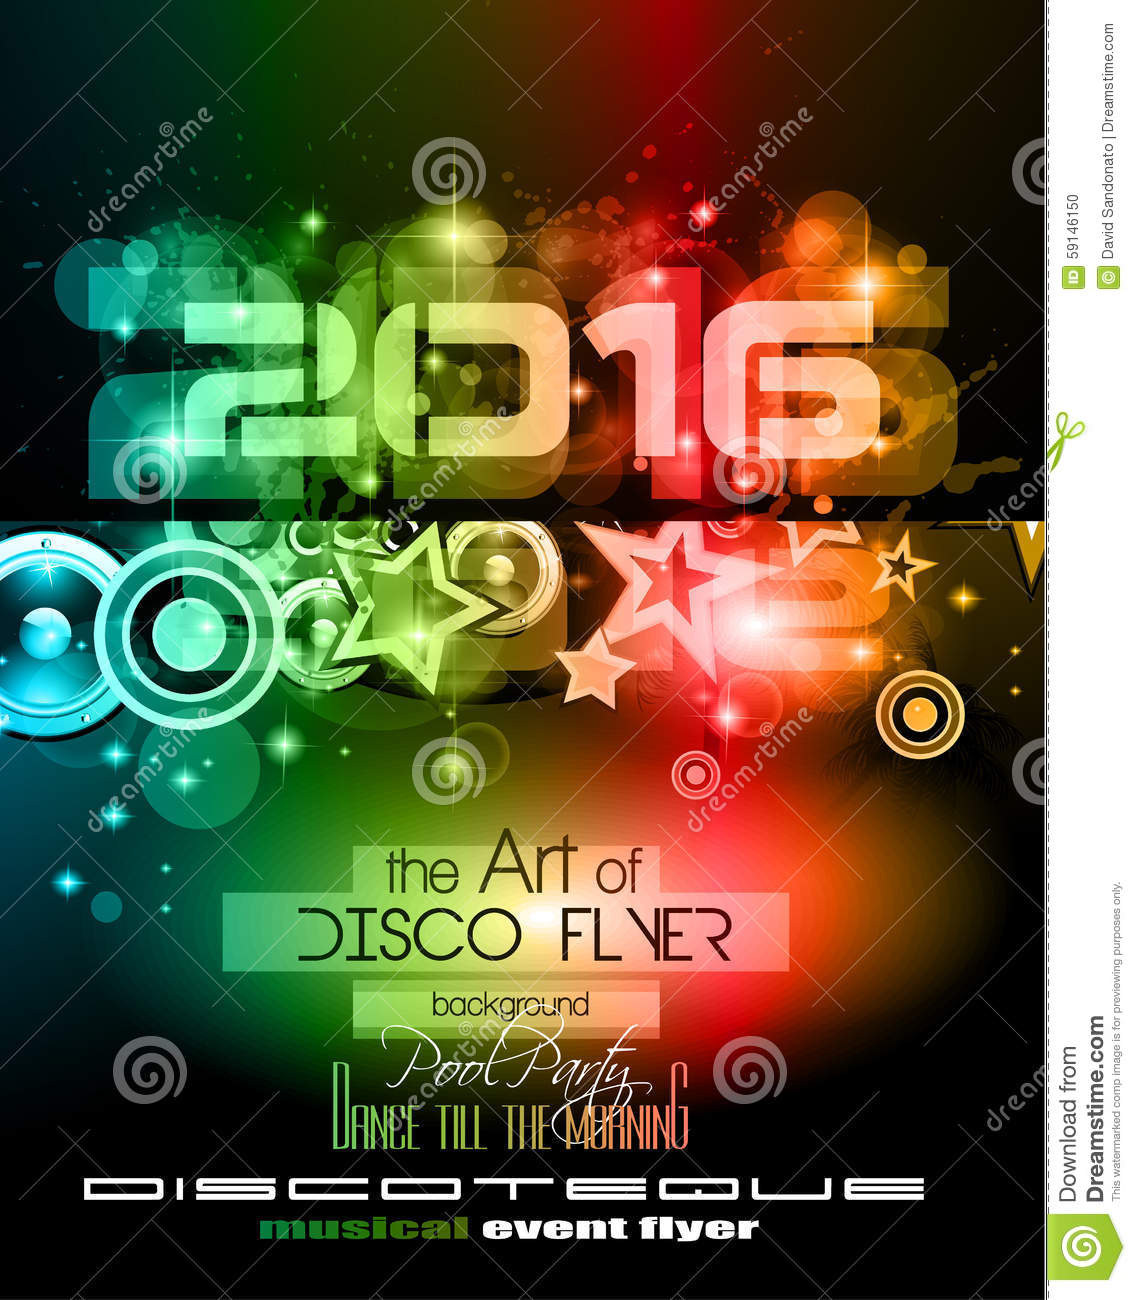 2016 new year s party flyer for club music night special events